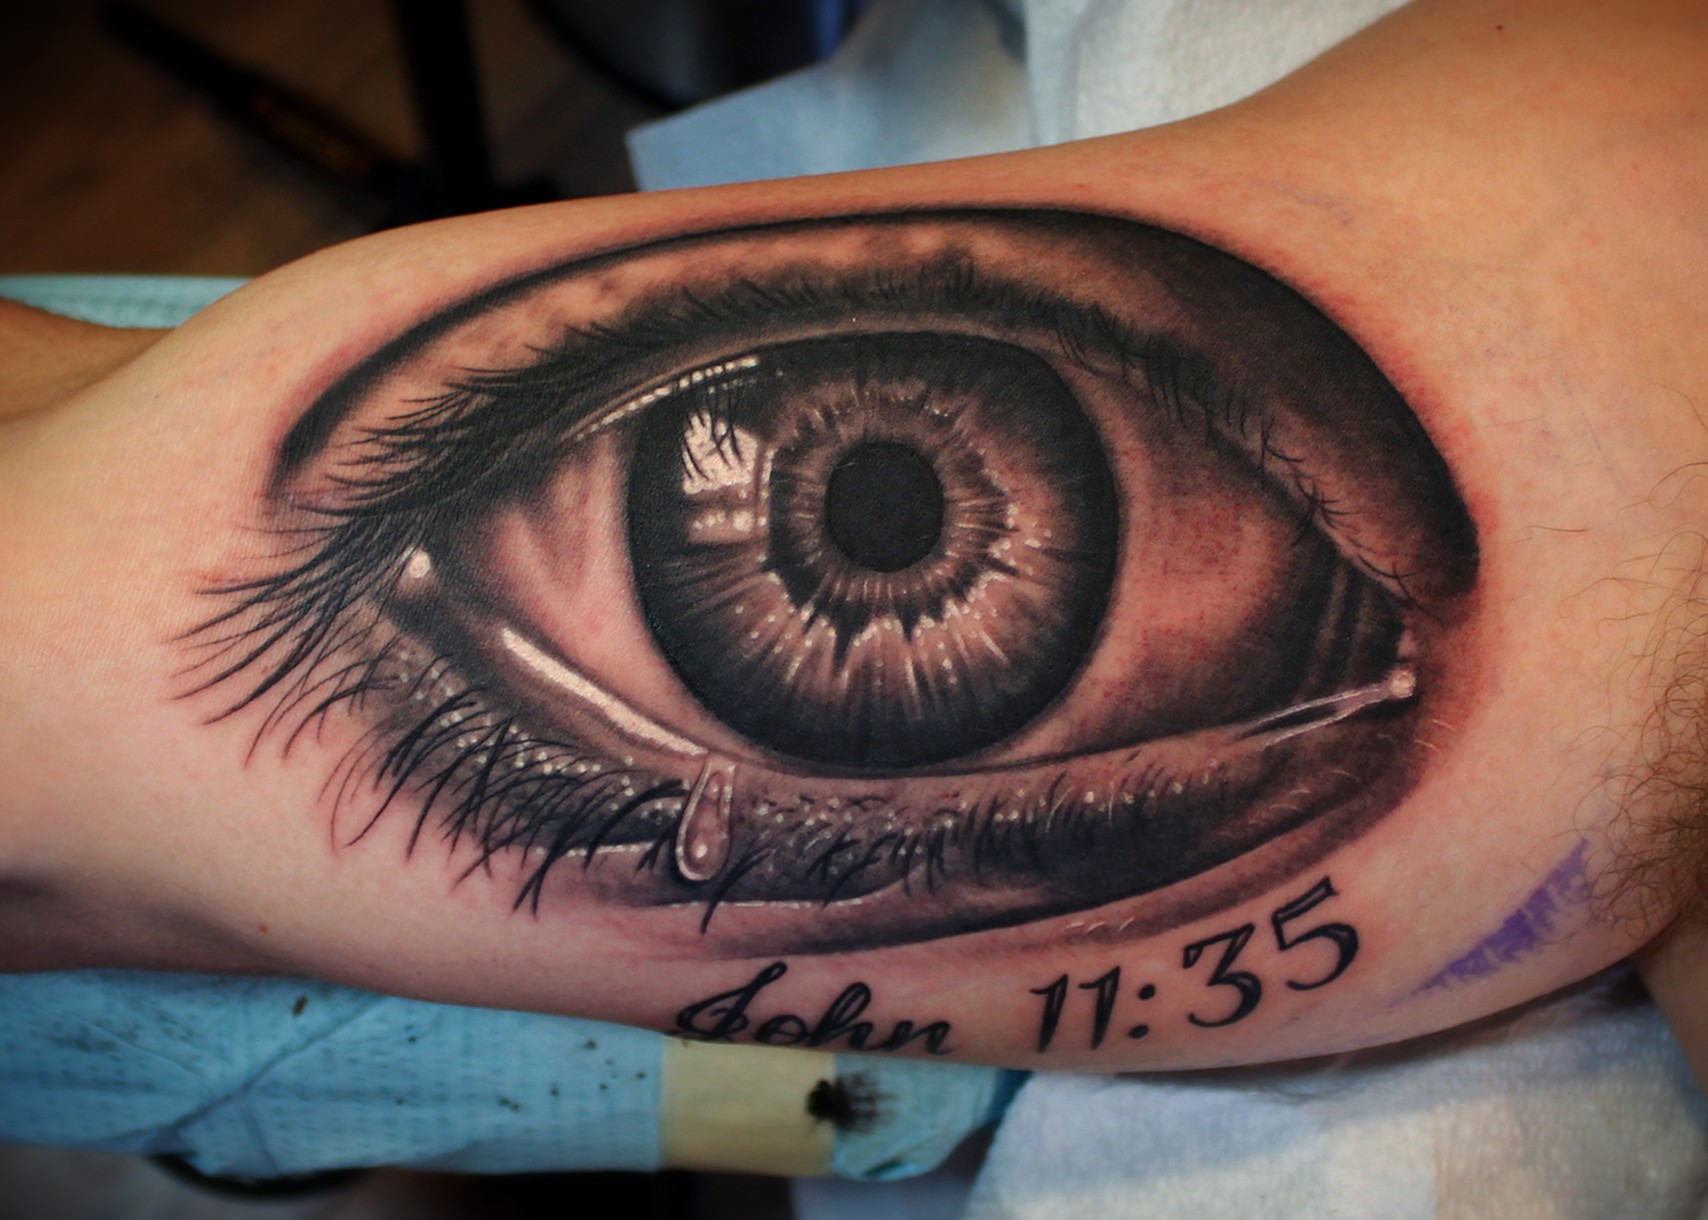 Dave wah tattoo artist baltimore maryland for Eye tattoo art